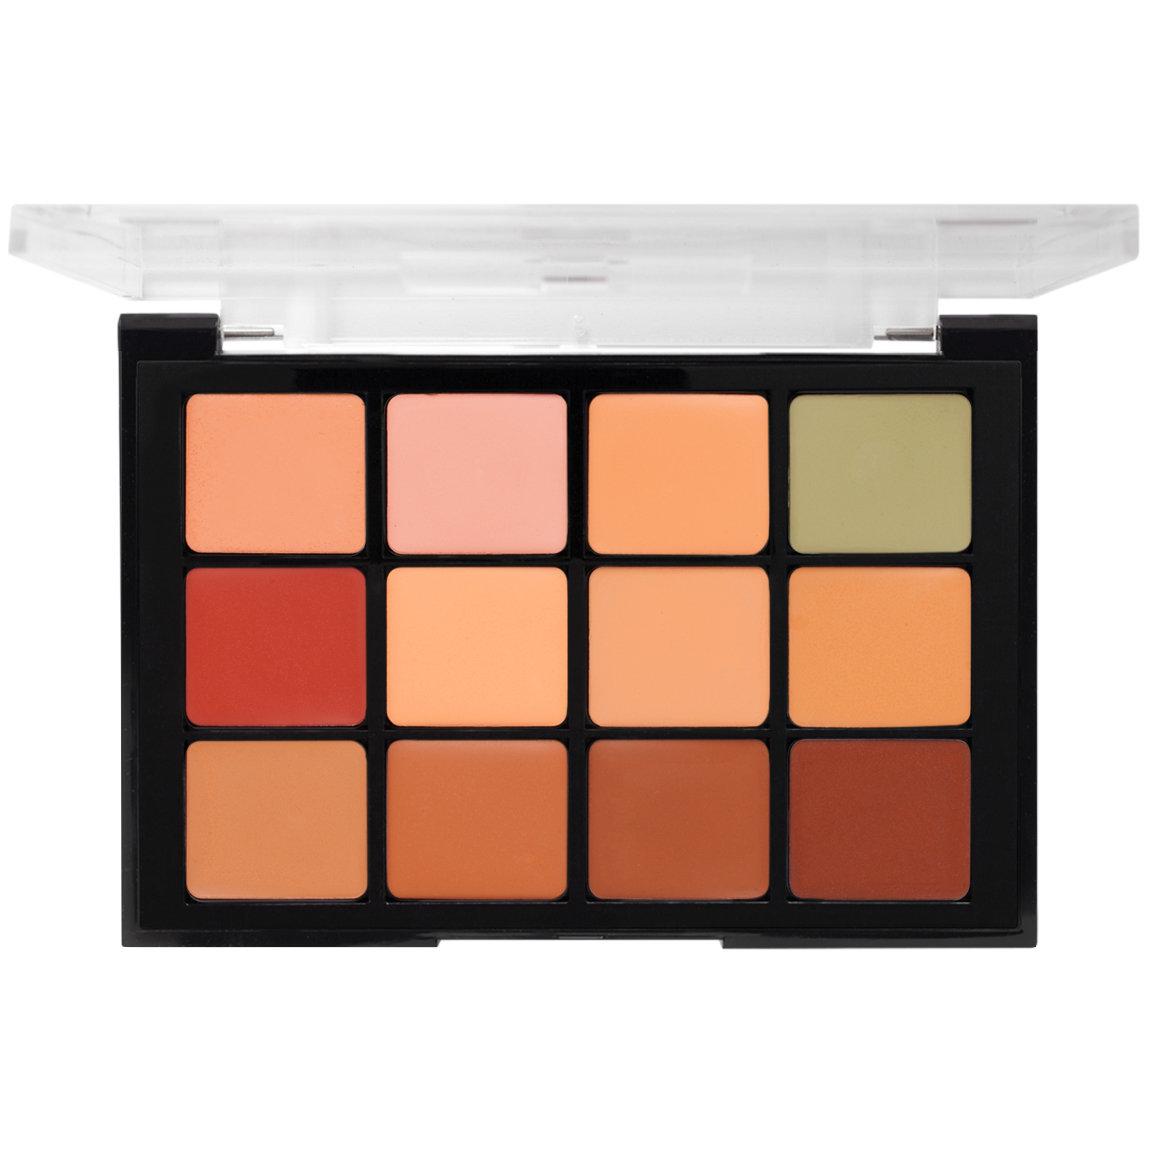 Viseart Corrector Contour Camouflage HD Palette 01 product swatch.